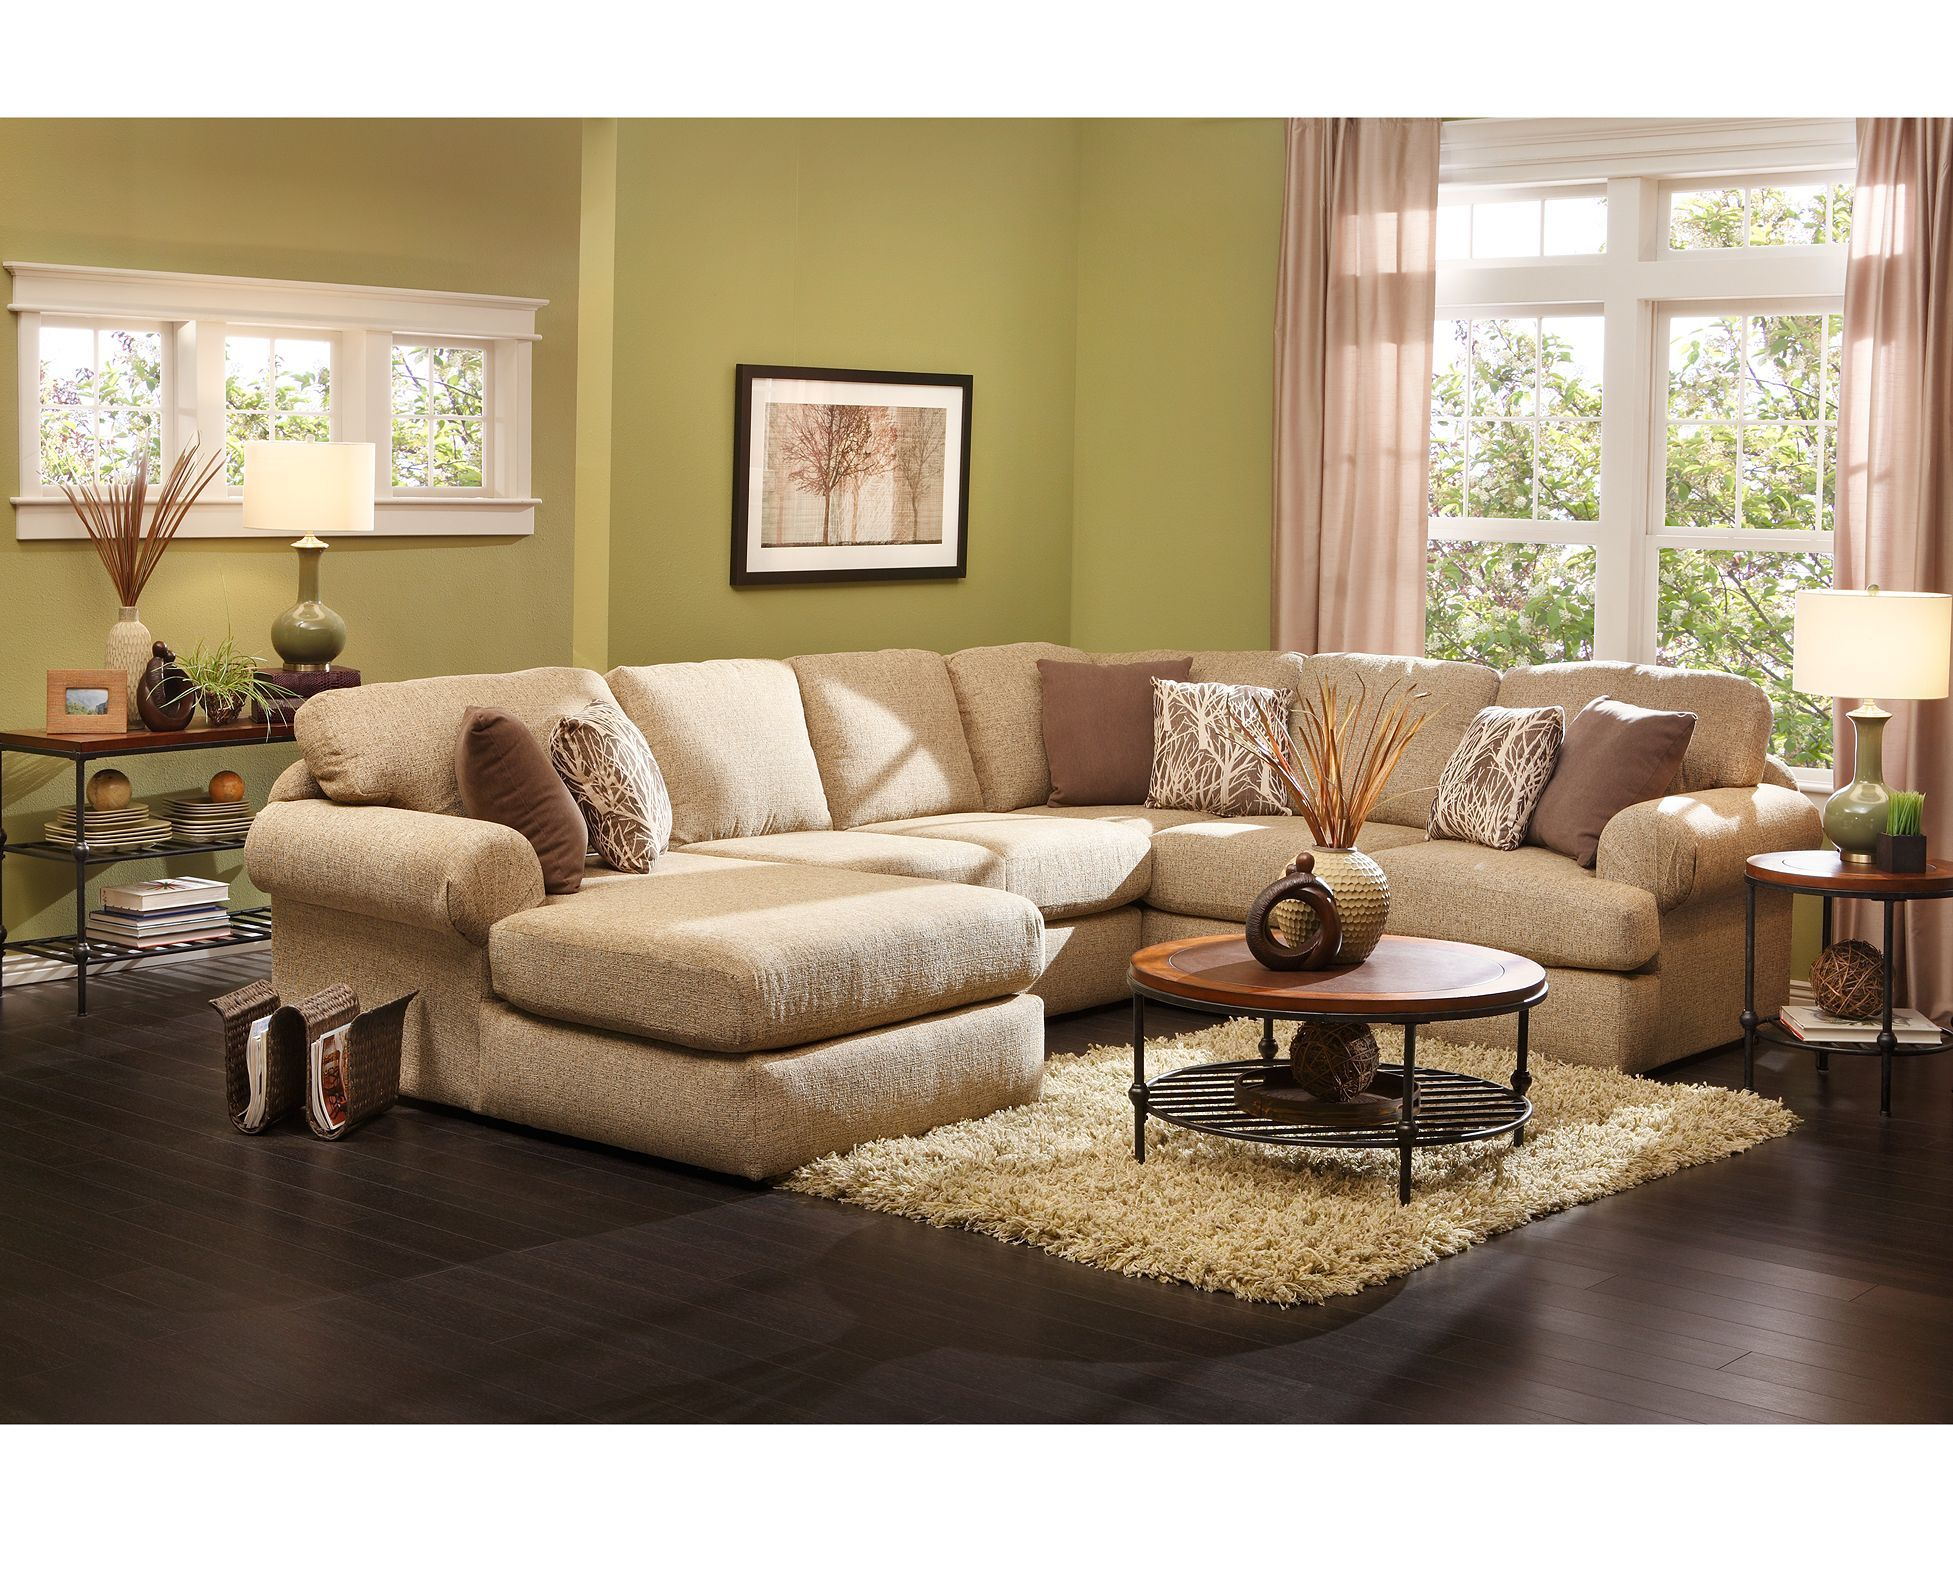 Southport 3 Pc Sectional Sofa Mart 1 844 763 6278